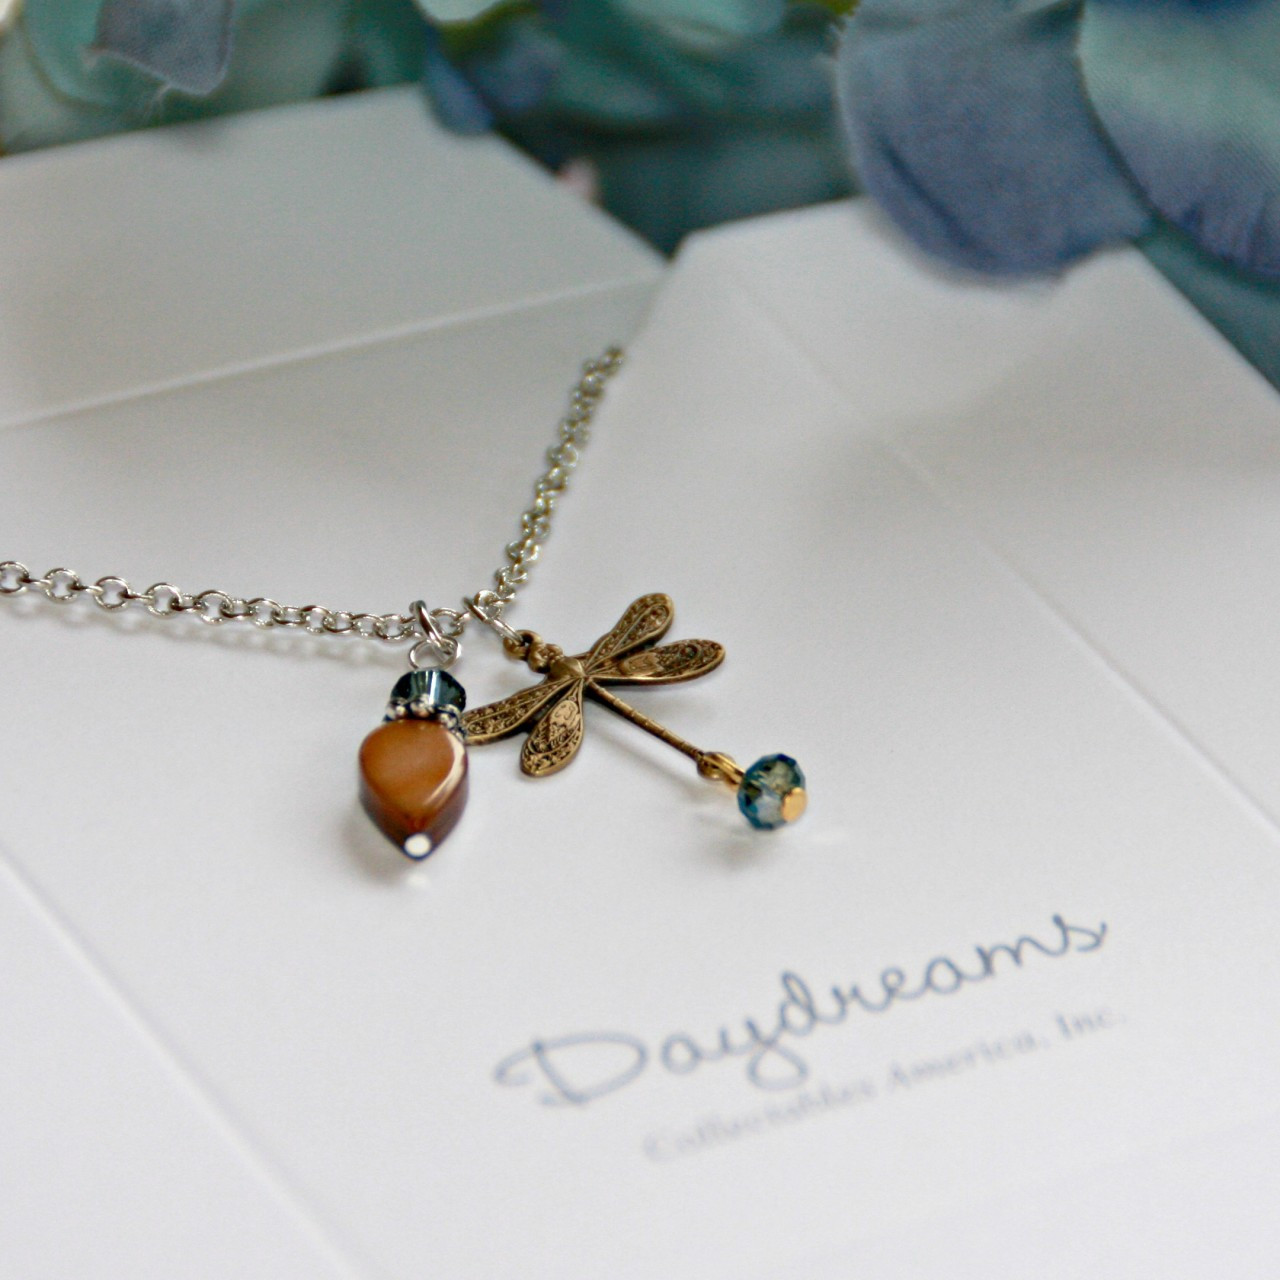 DD-13  Dragonfly Charm Necklace from Daydreams Collection